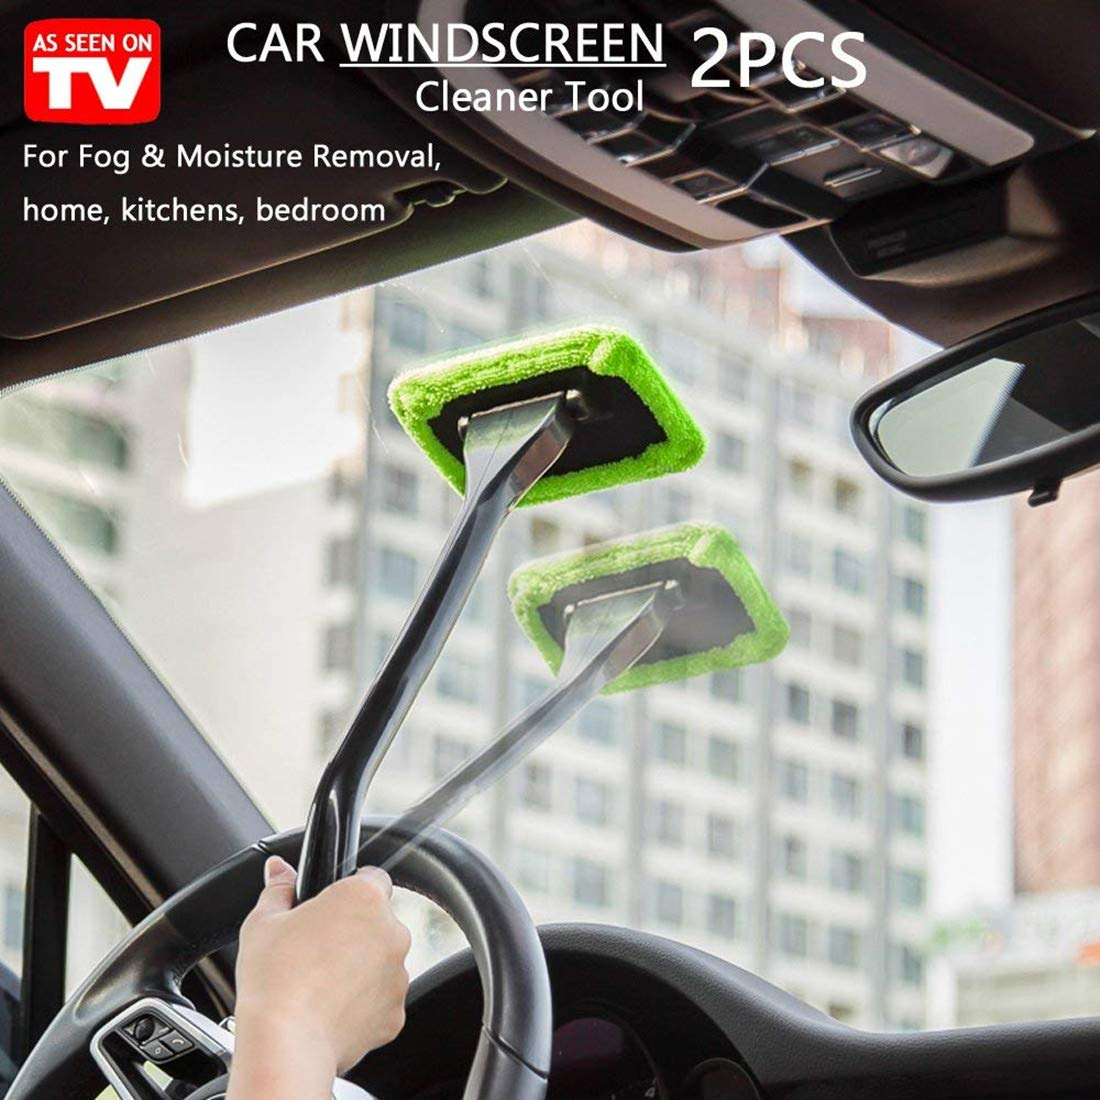 GREEN DSHT 2 Pack Car Windscreen Cleaner Tools From Inside Window Glass Cleaning Tools For Home Kichens With Cloth and Long Handle